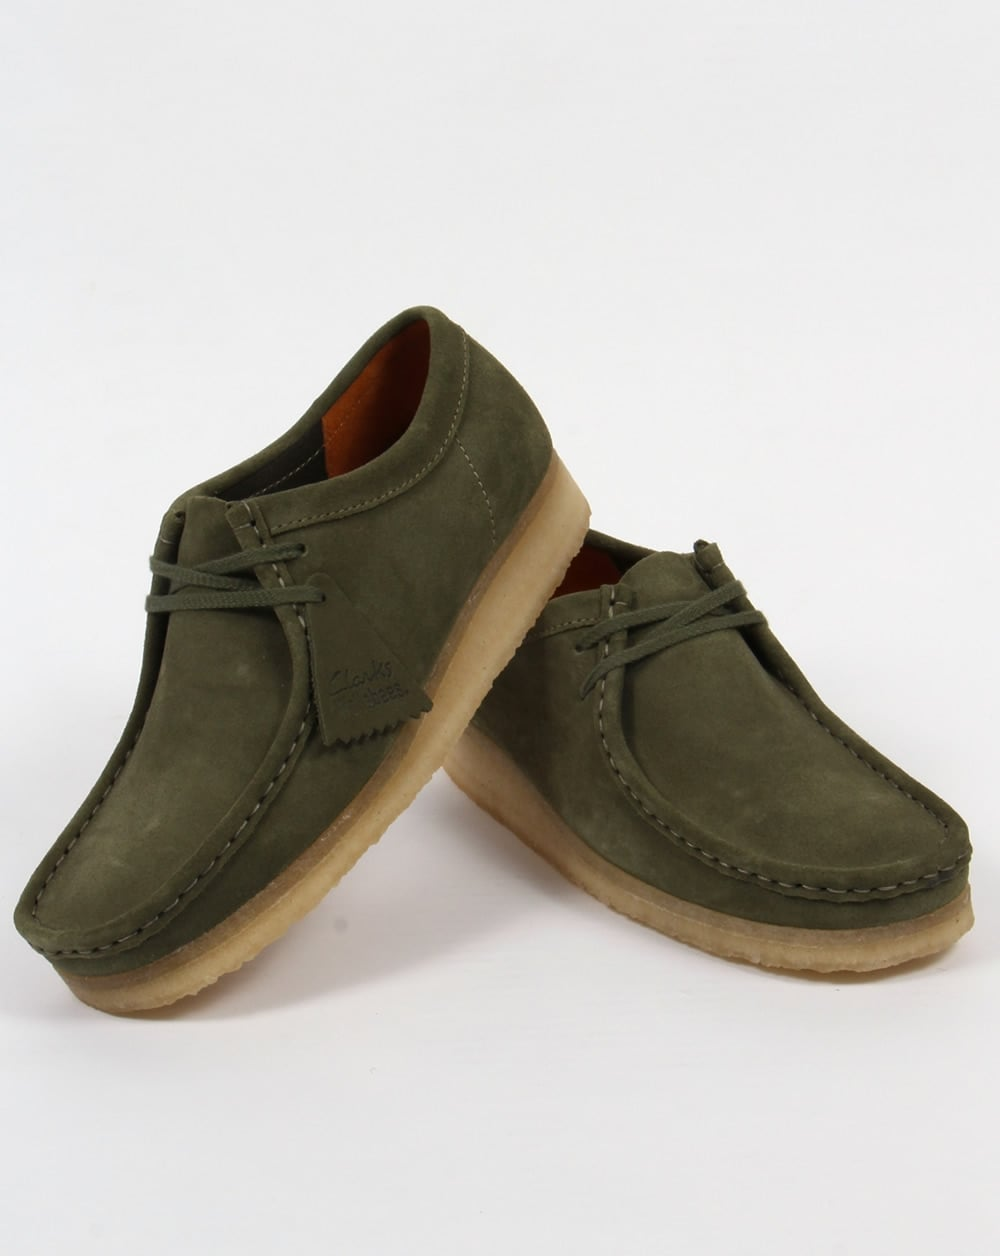 Buy Clarks Shoes Uk